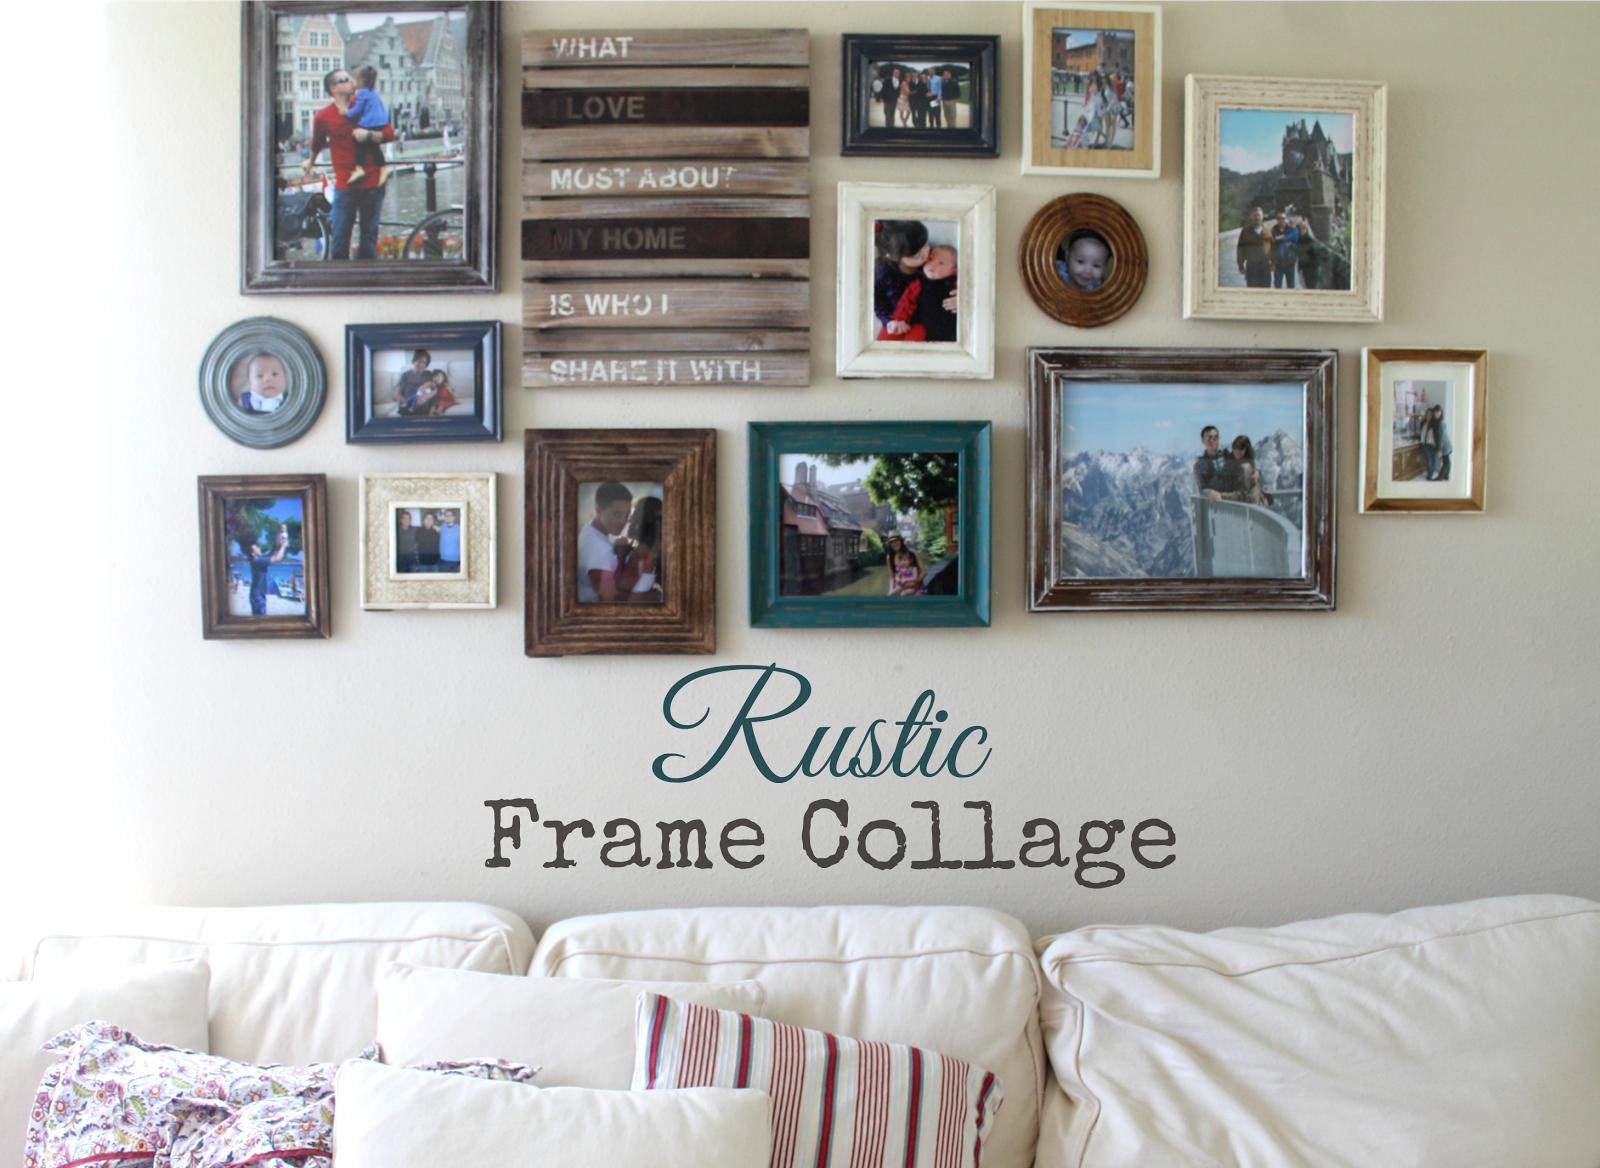 Wall Collage Frames pretty rustic frame collage. frames from michaels, tj maxx, home